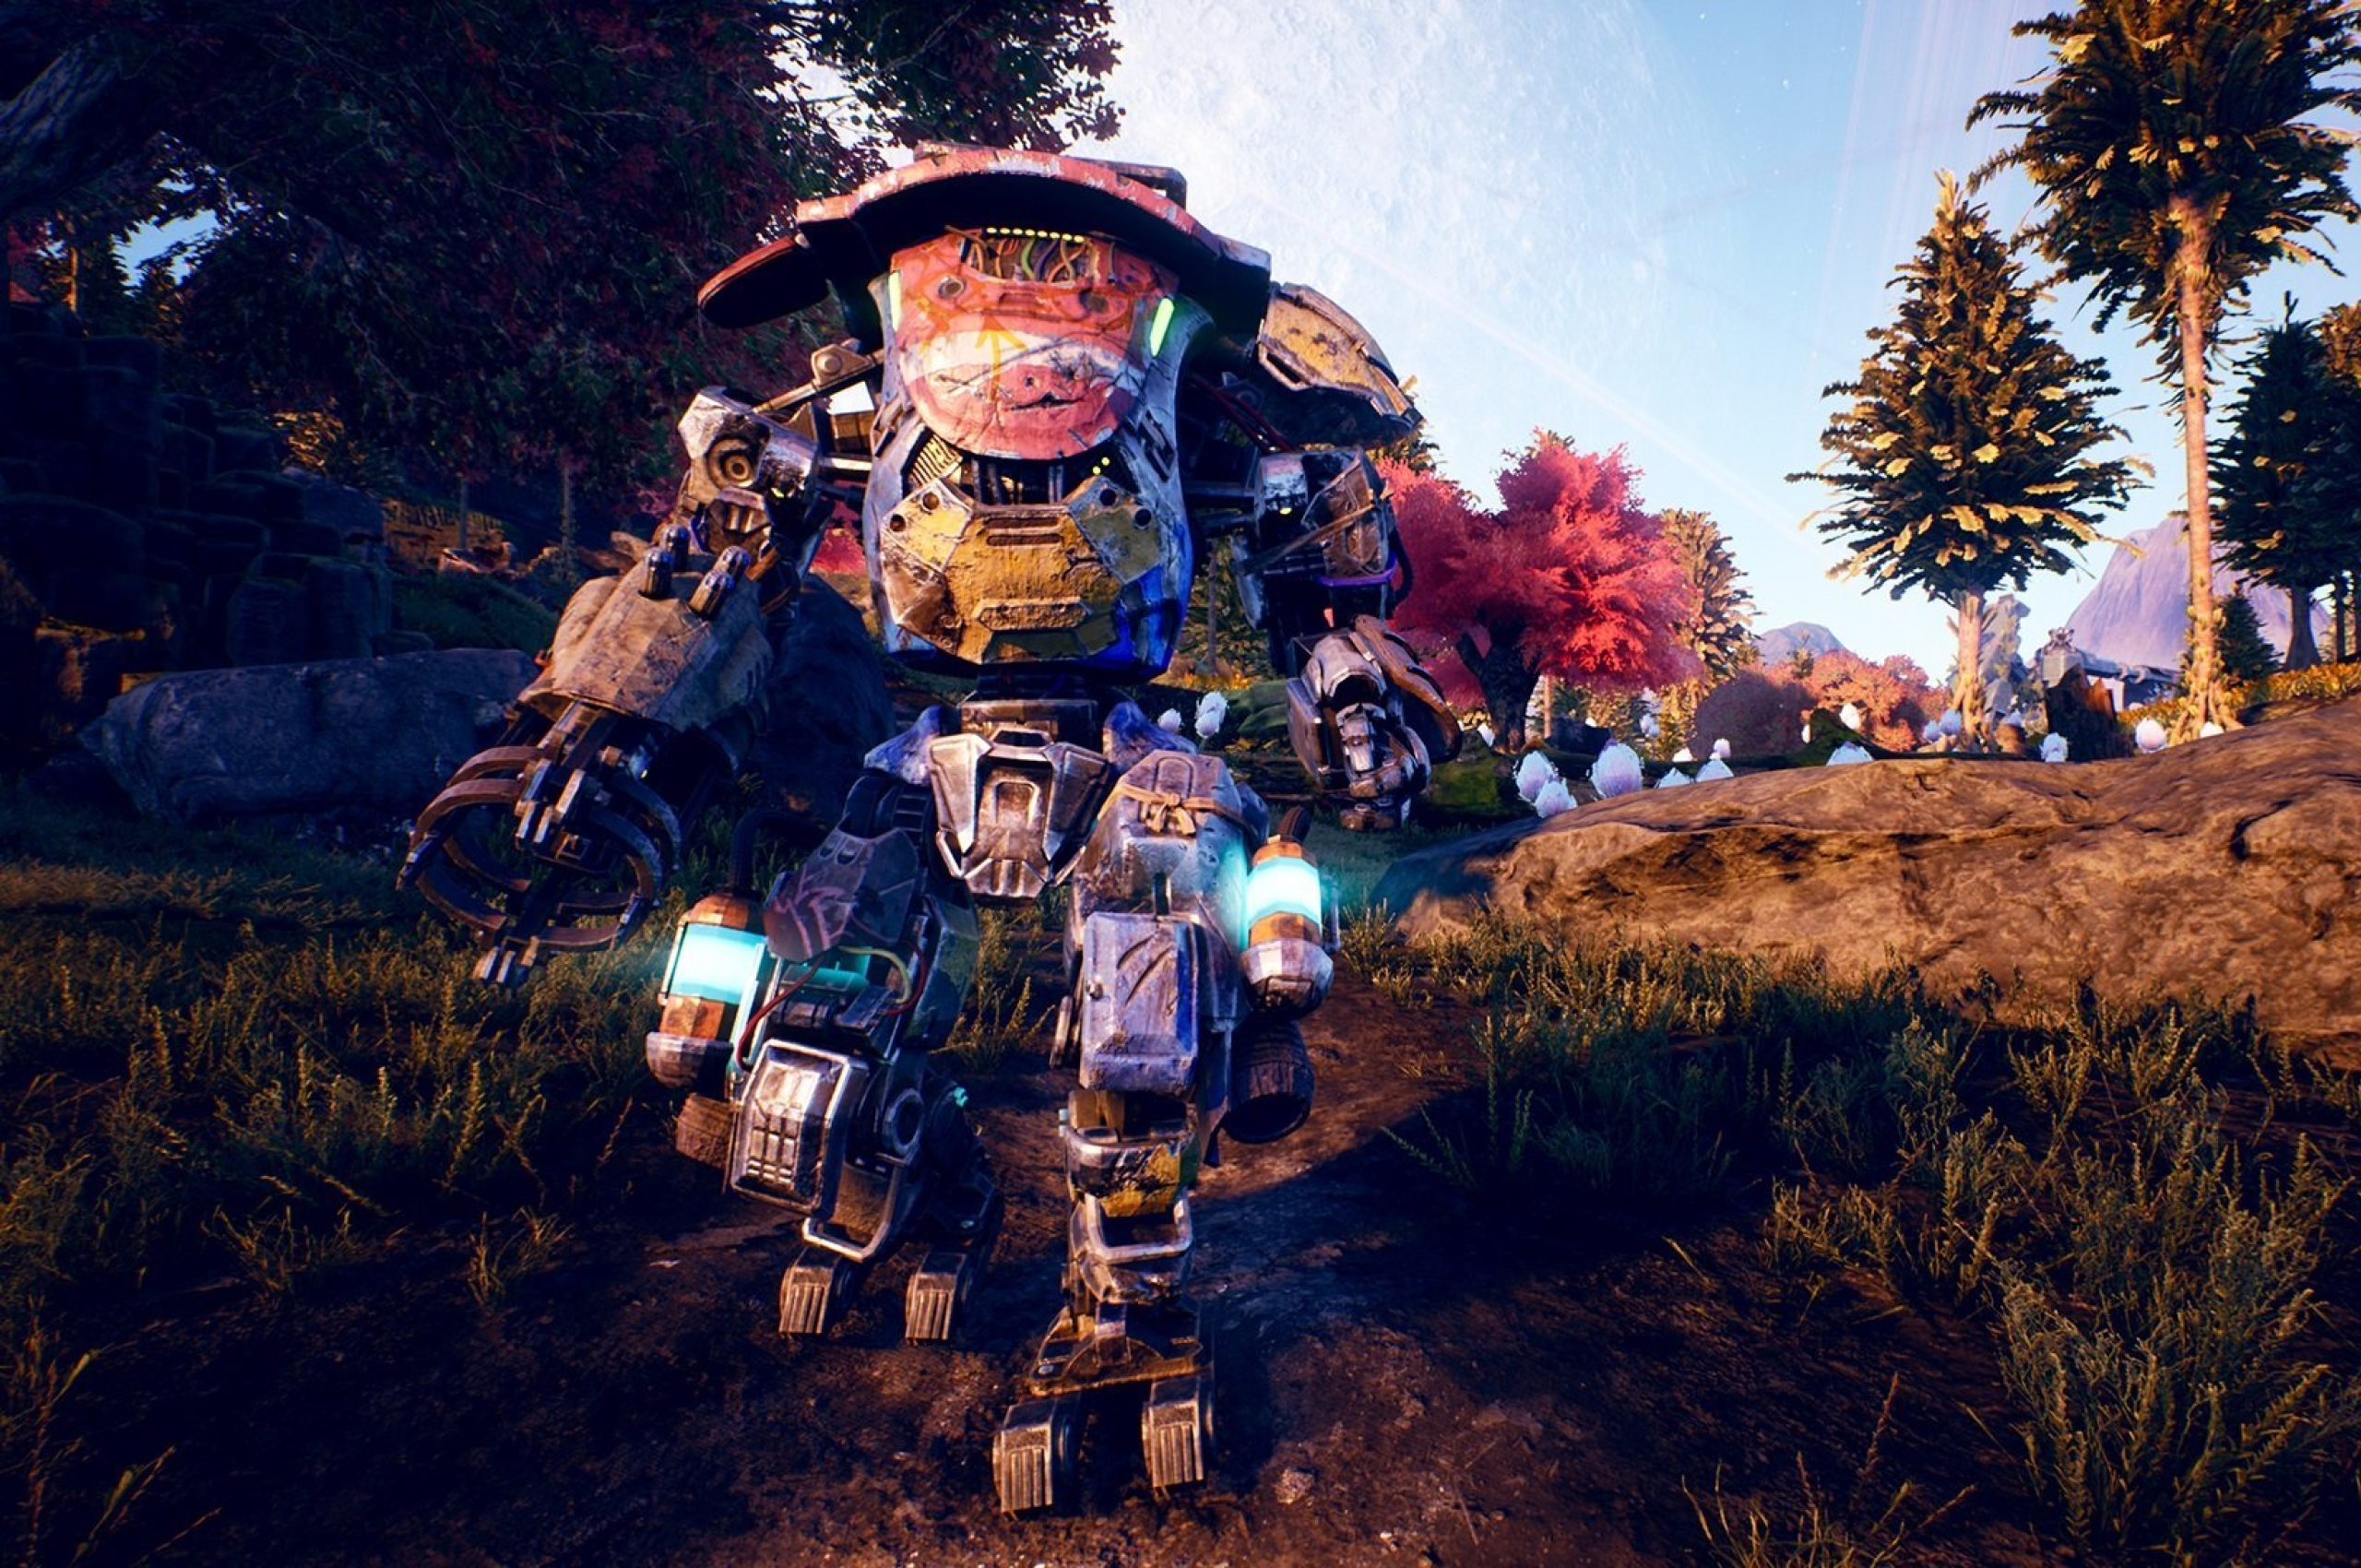 2560x1700 The Outer Worlds Game Chromebook Pixel Wallpaper ...